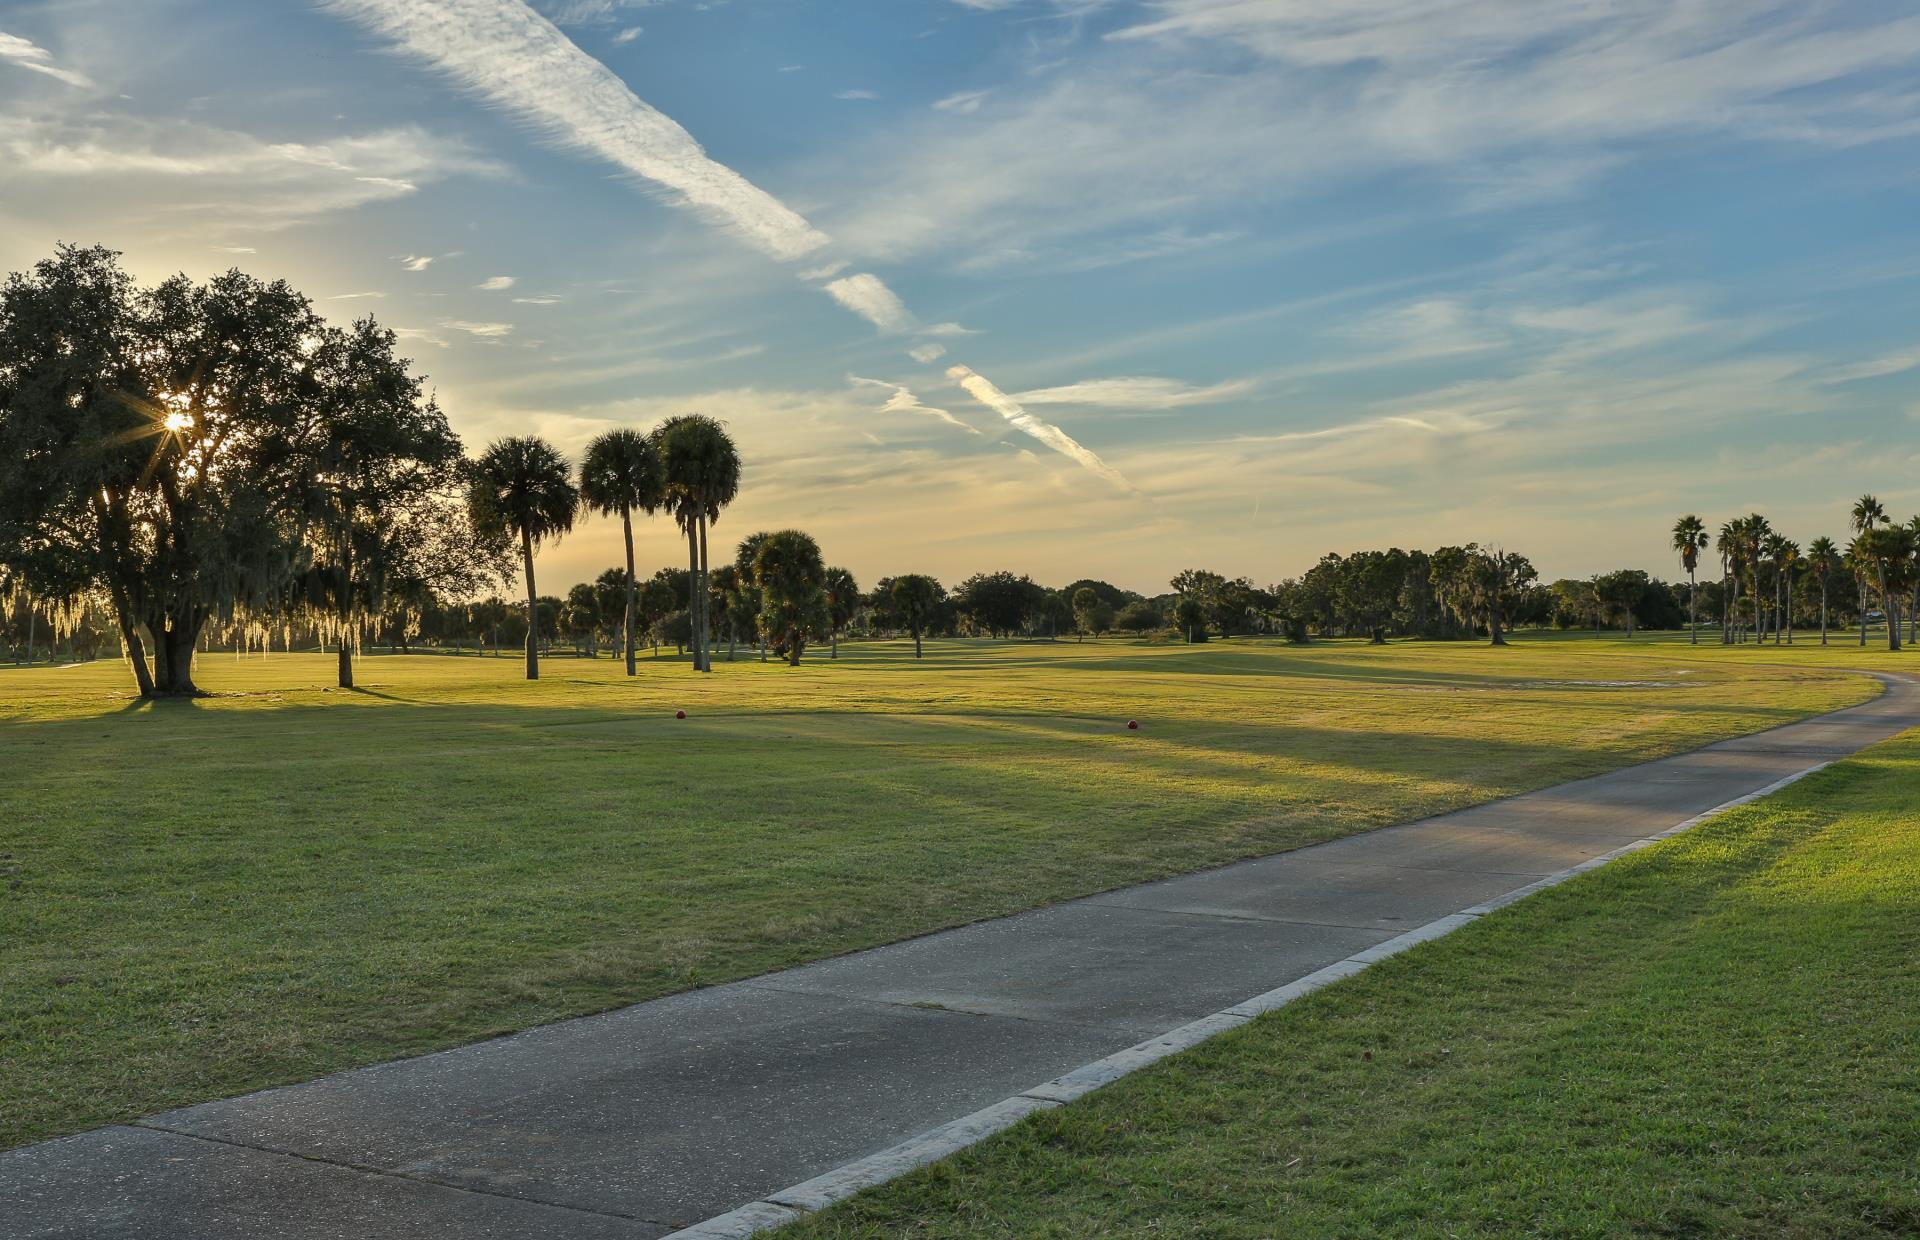 Bobby Jones Golf Club Nature Trails Open May 23